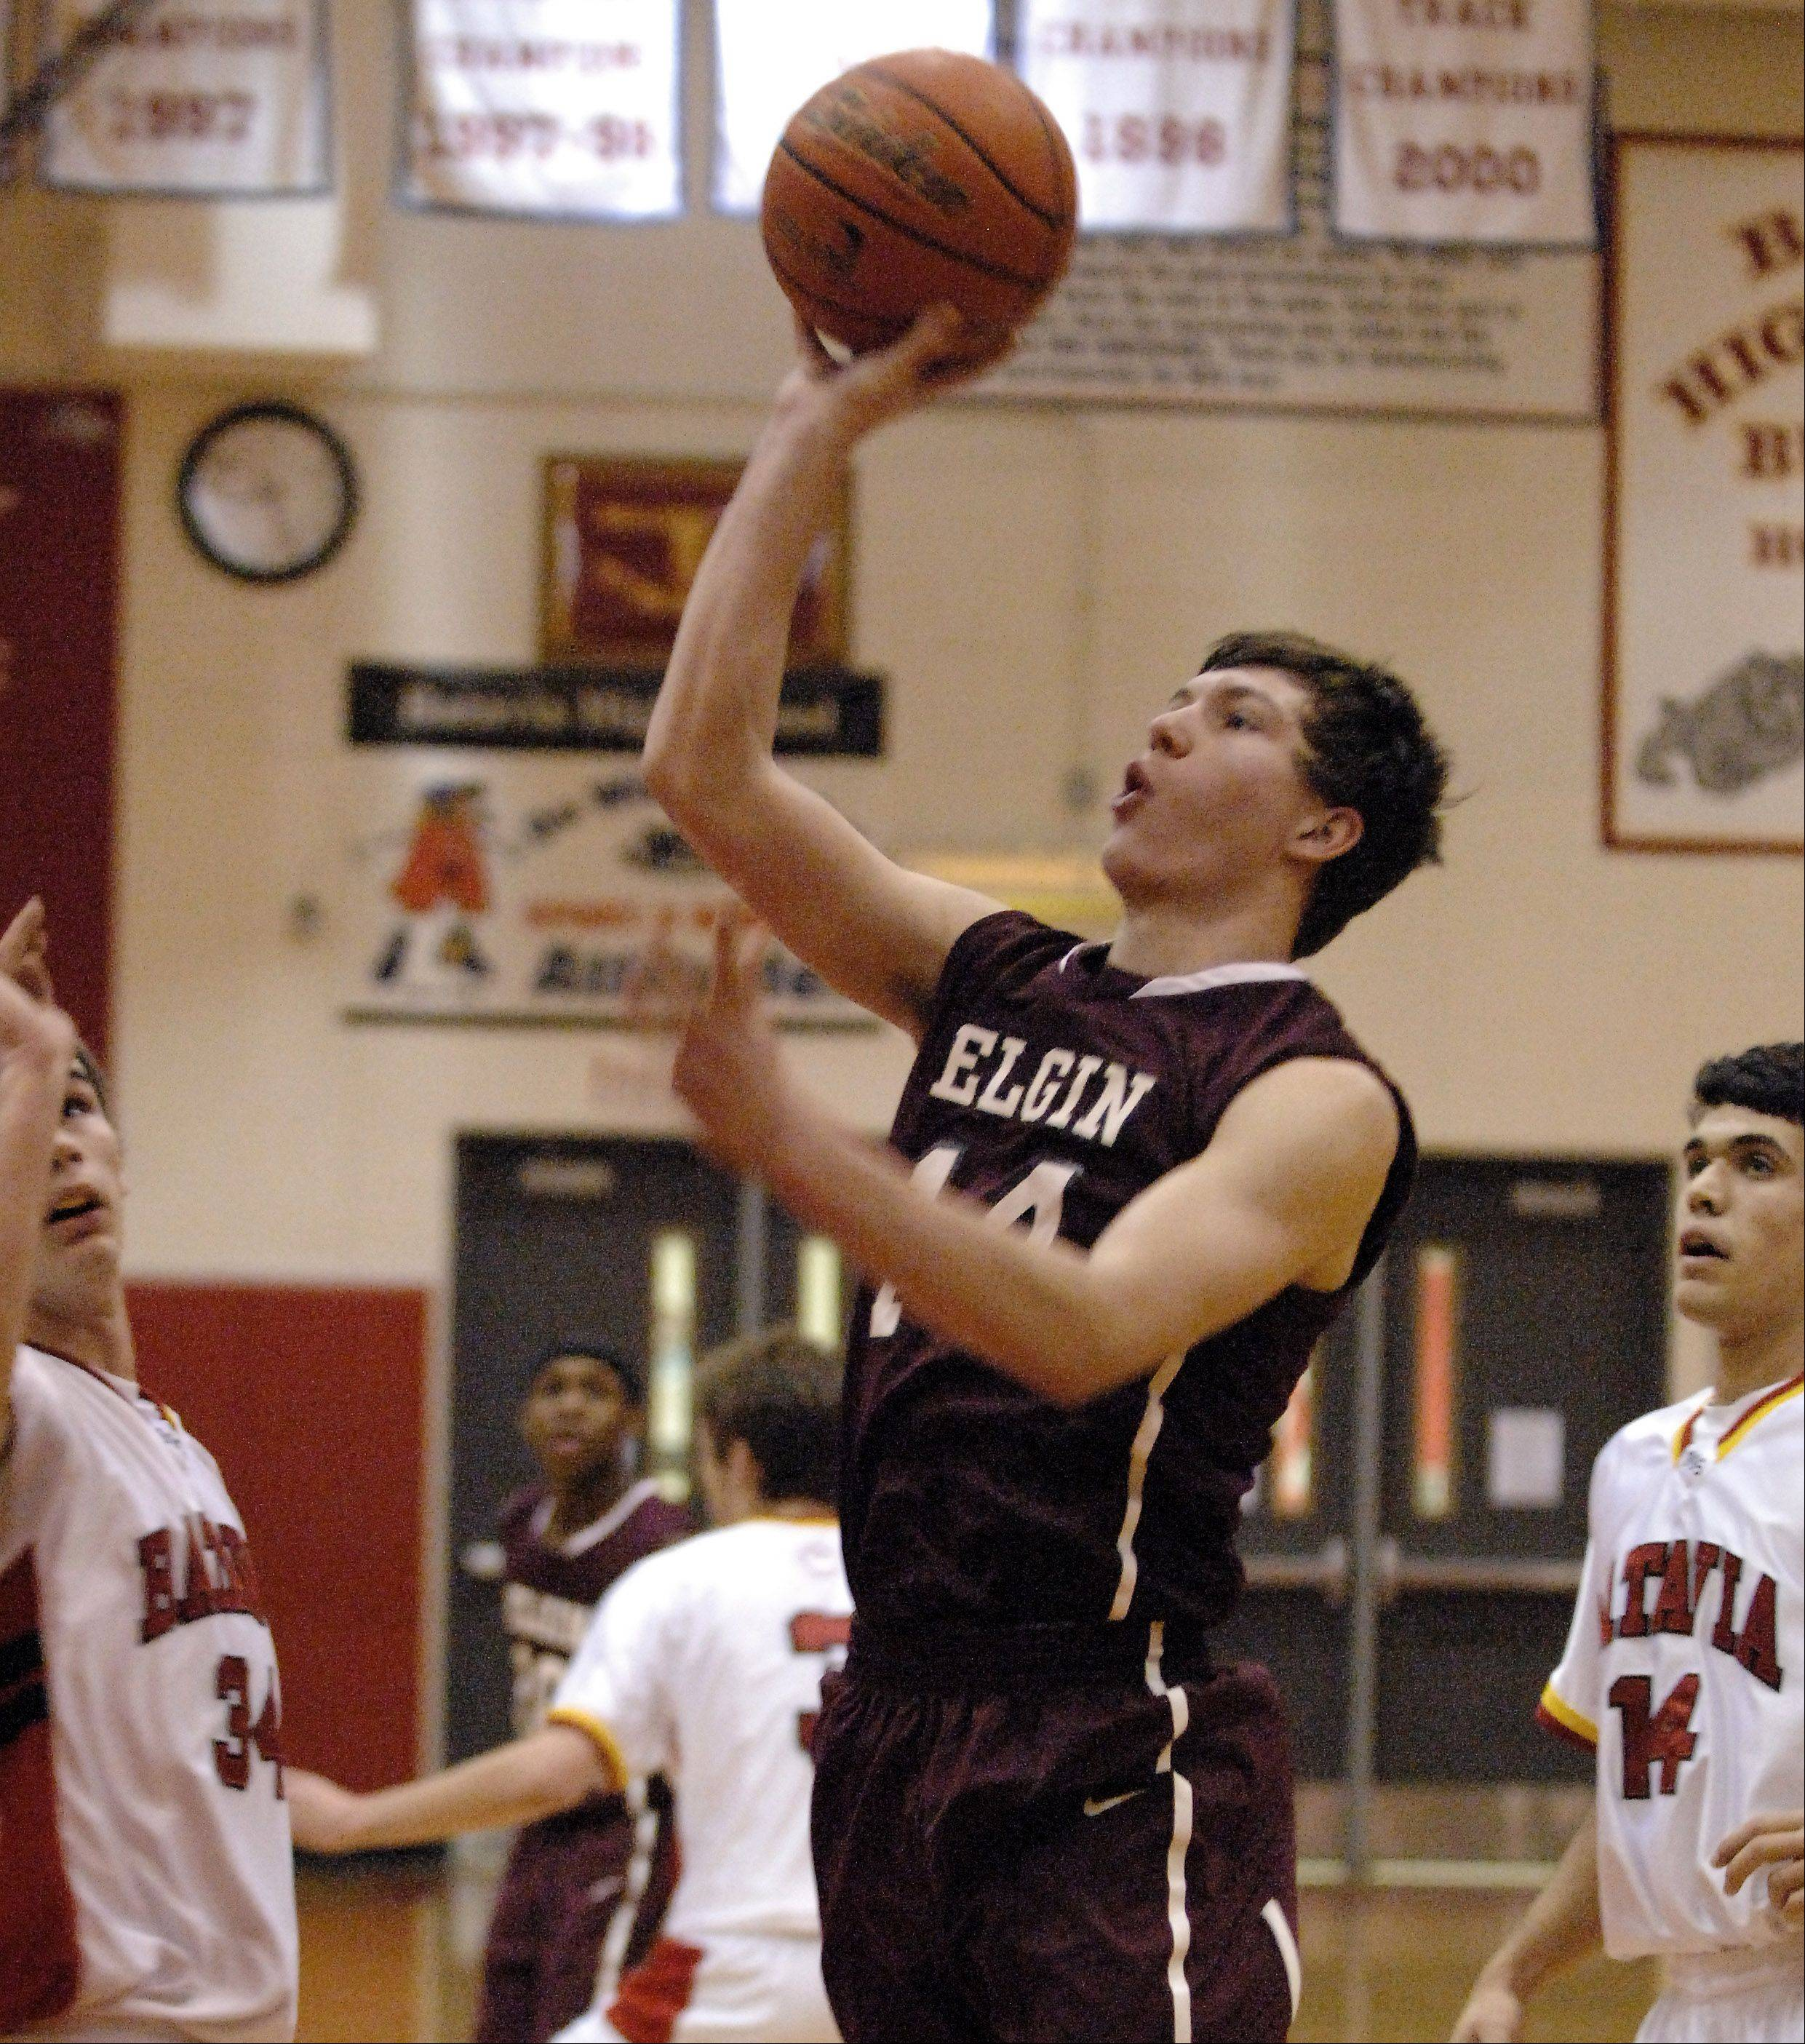 Elgin's Eric Sedlack scores on a short jumper.